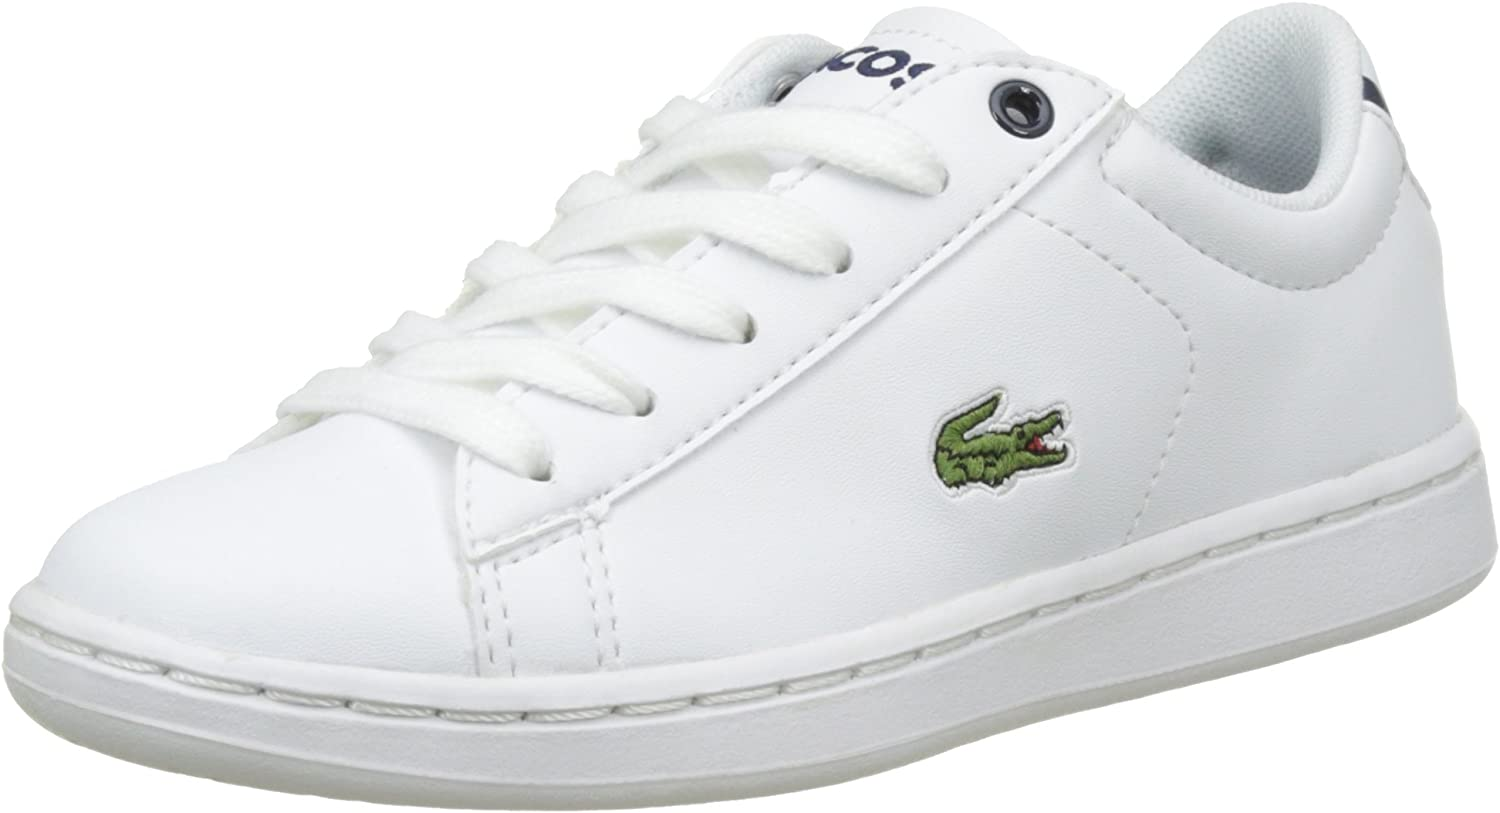 Navy Synthetic Child Trainers Shoes